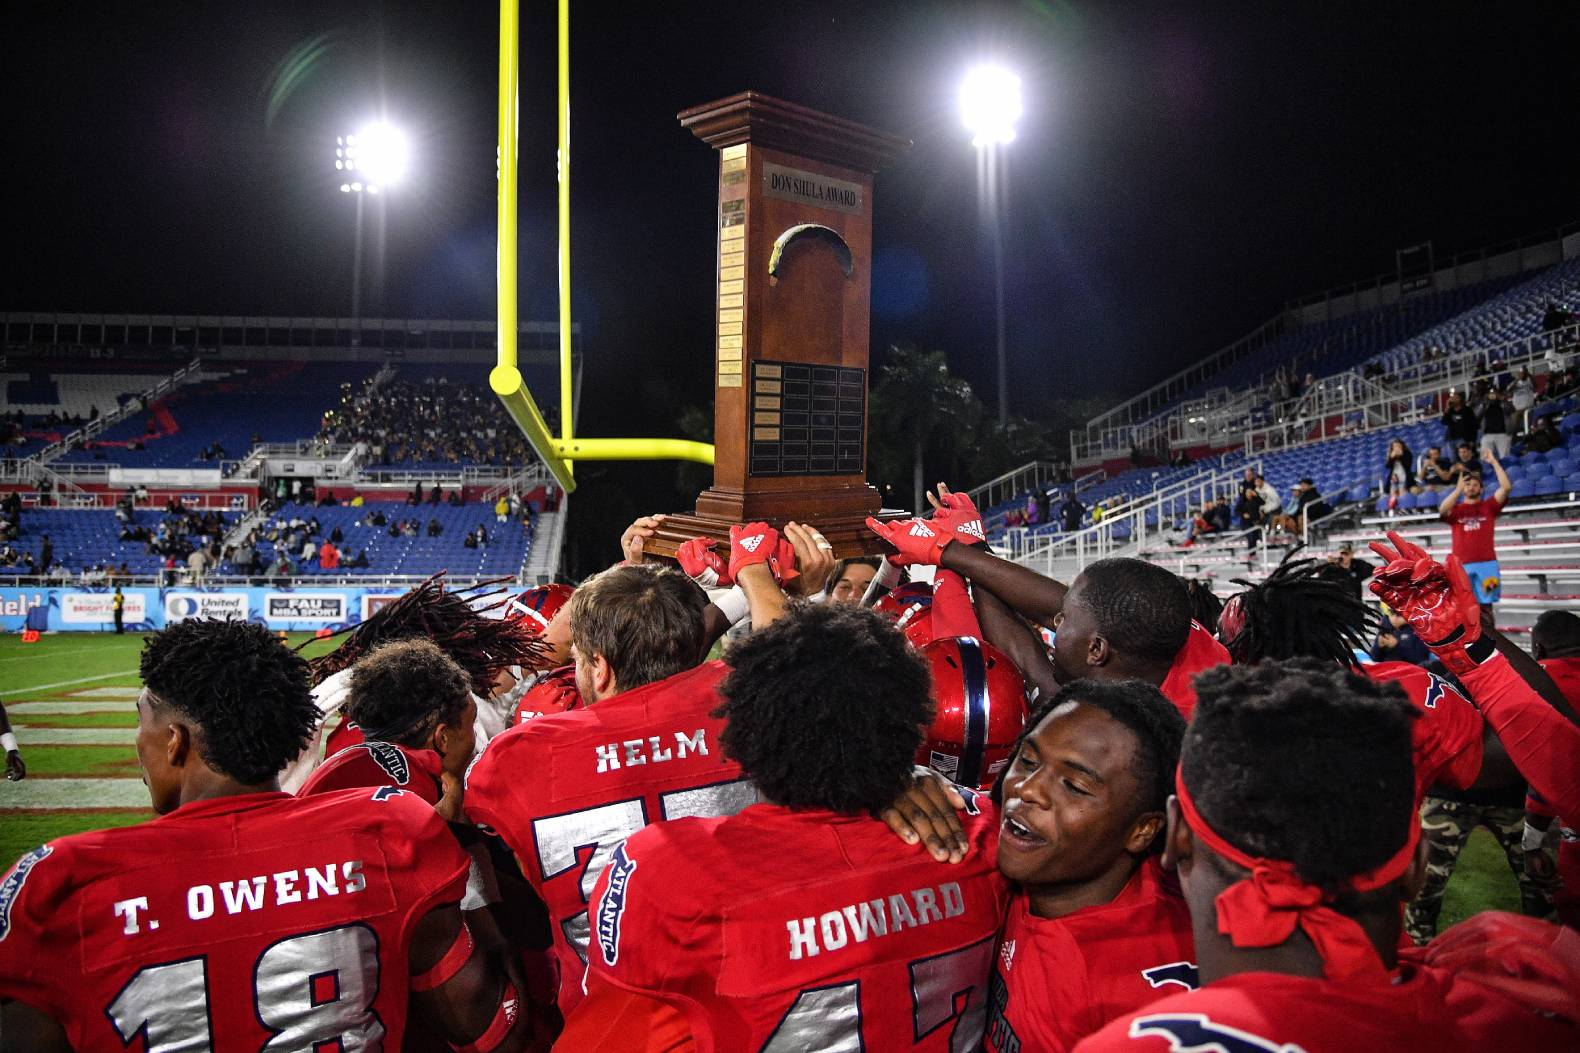 Florida Atlantic's football team didn't have a positive coronavirus test in its first two weeks back under new coach Willie Taggart.